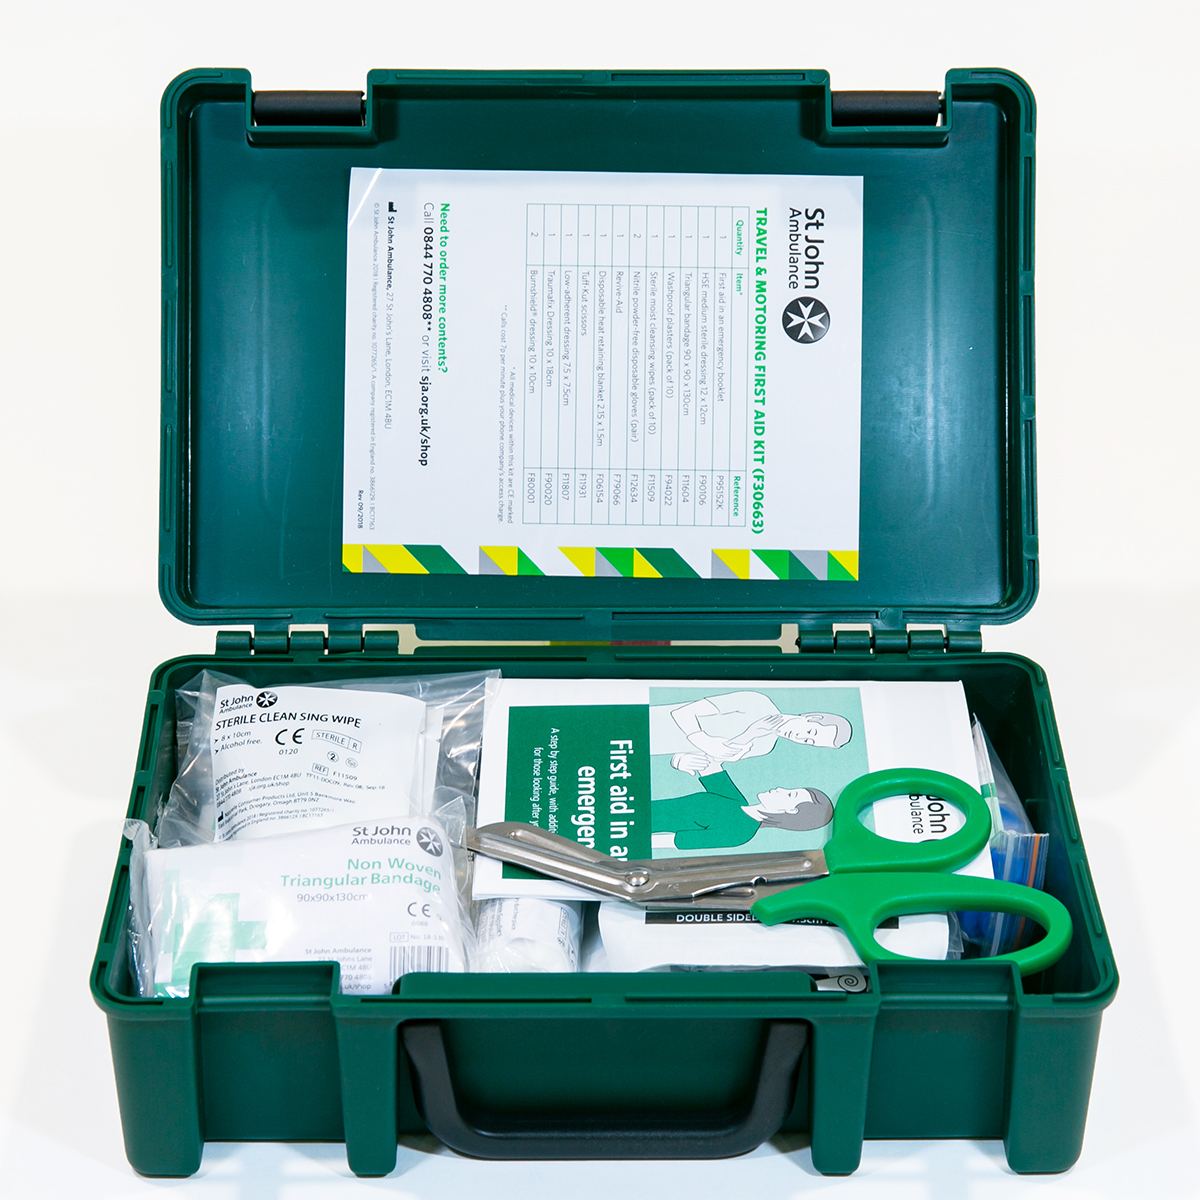 St John Ambulance Standard Travel and Motoring Workplace First Aid Kit BS 8599-1:2019